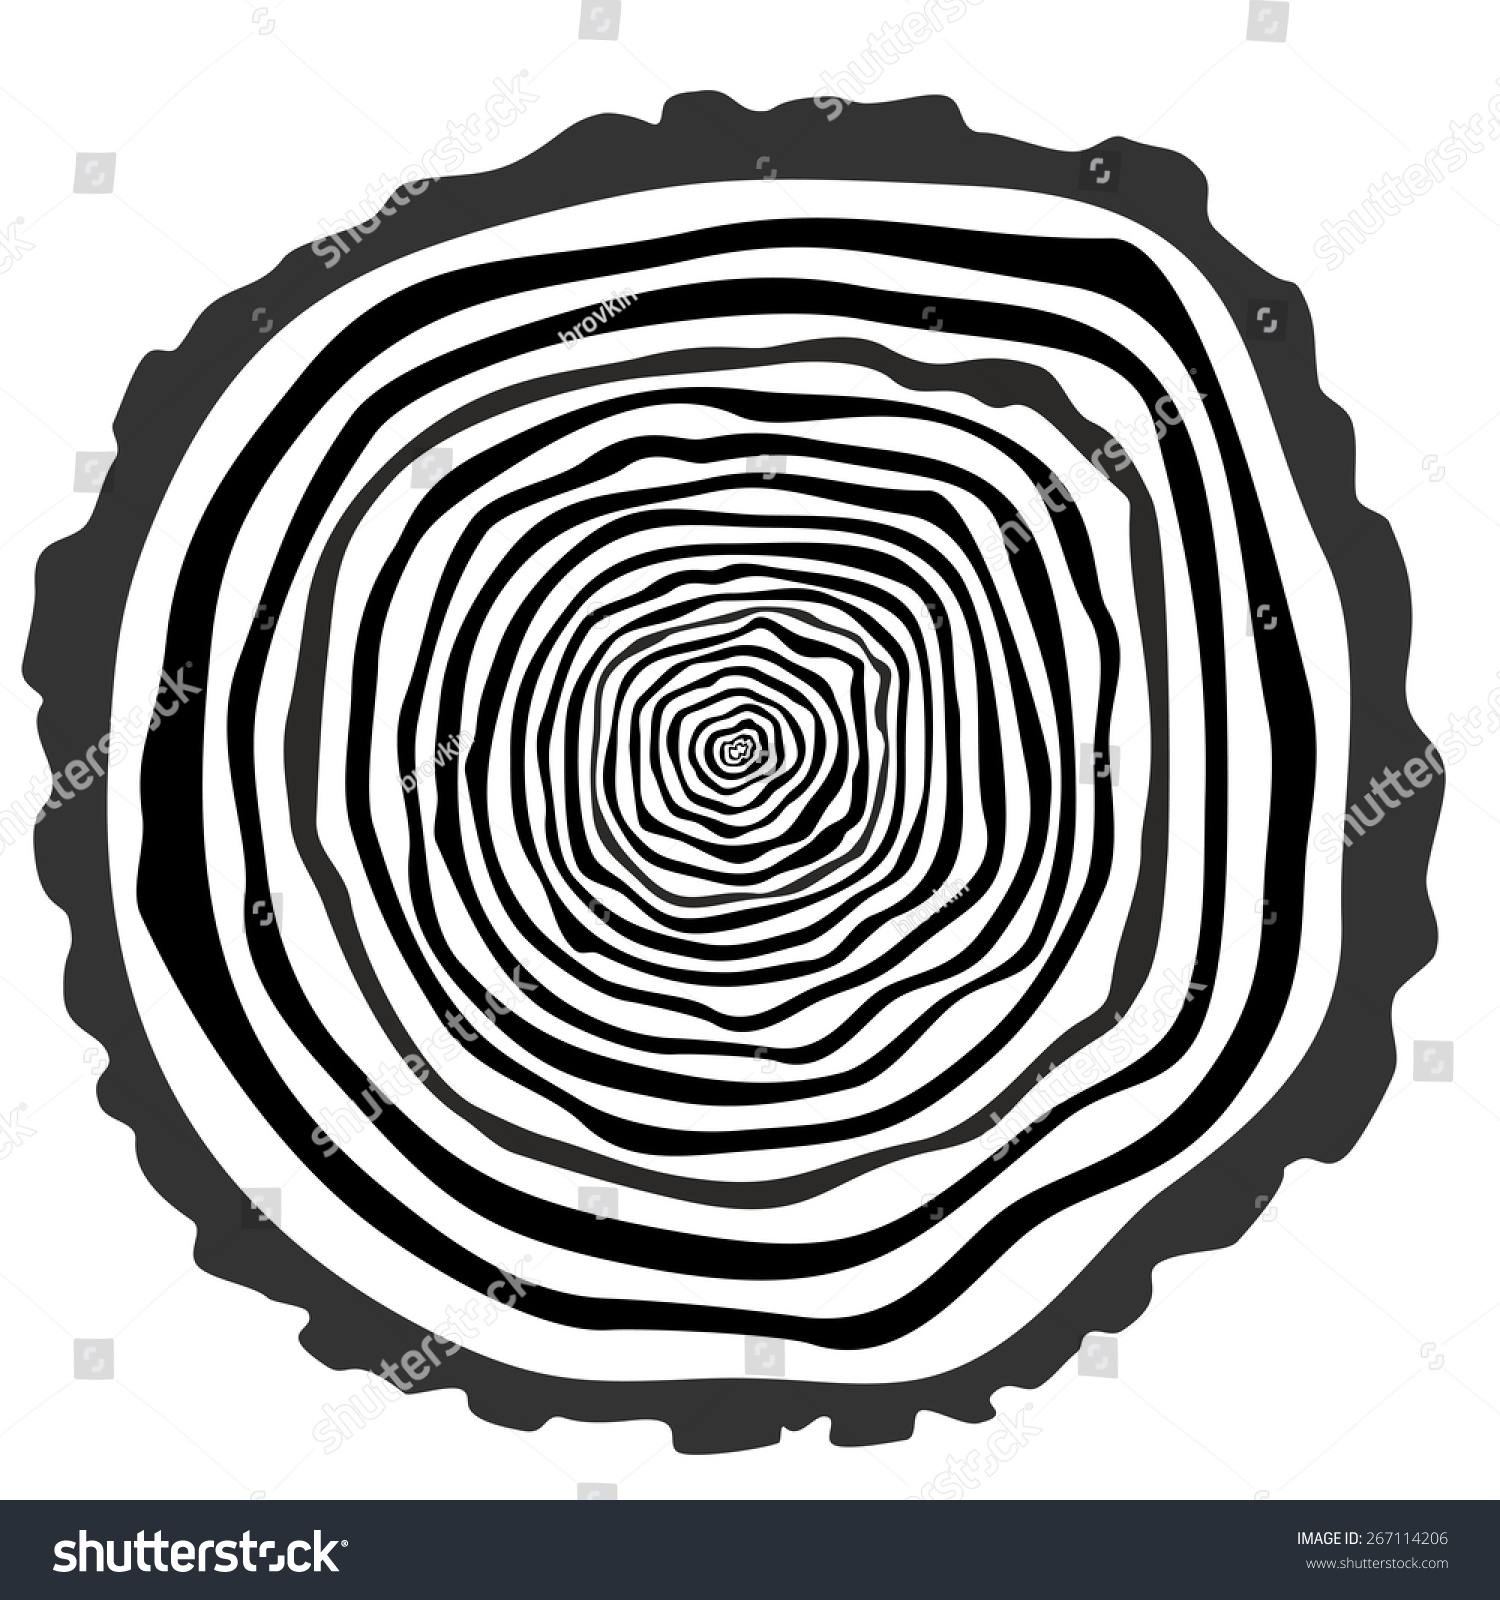 Vector Tree Ring - Download Free Vector Art, Stock Graphics &- Images